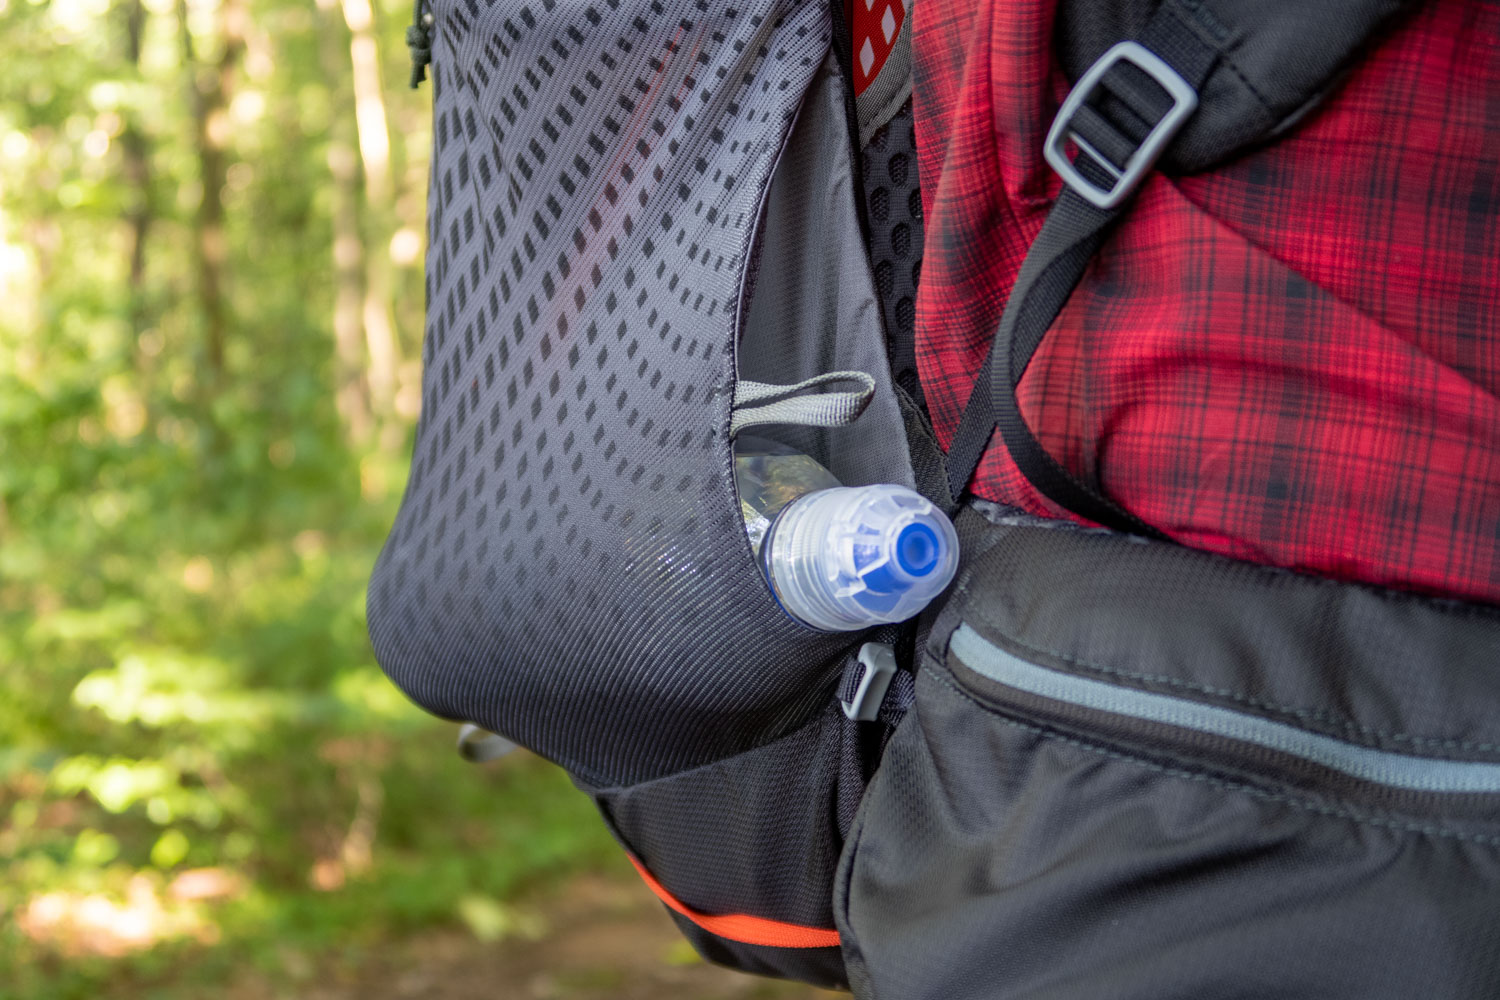 side pocket holding a bottle the Holster style way